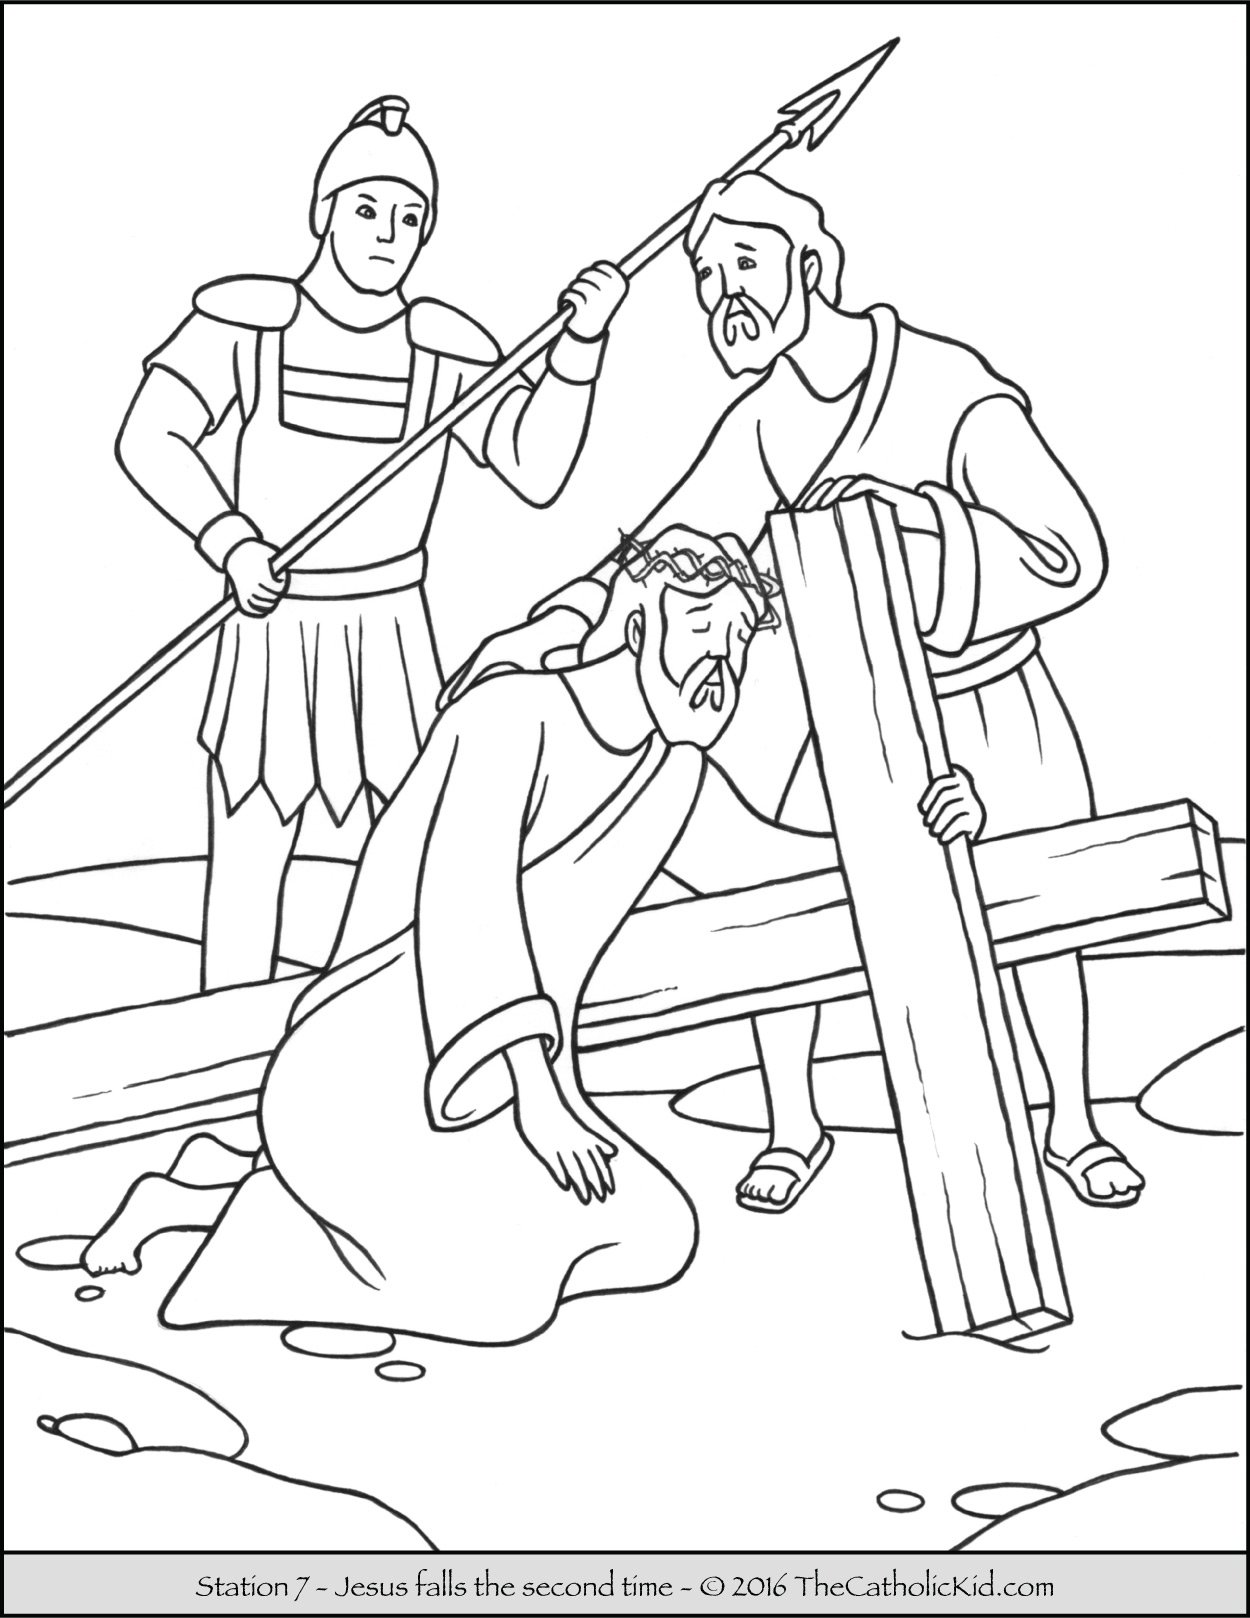 Stations of the Cross Coloring Pages 7 - Jesus Falls the Second Time